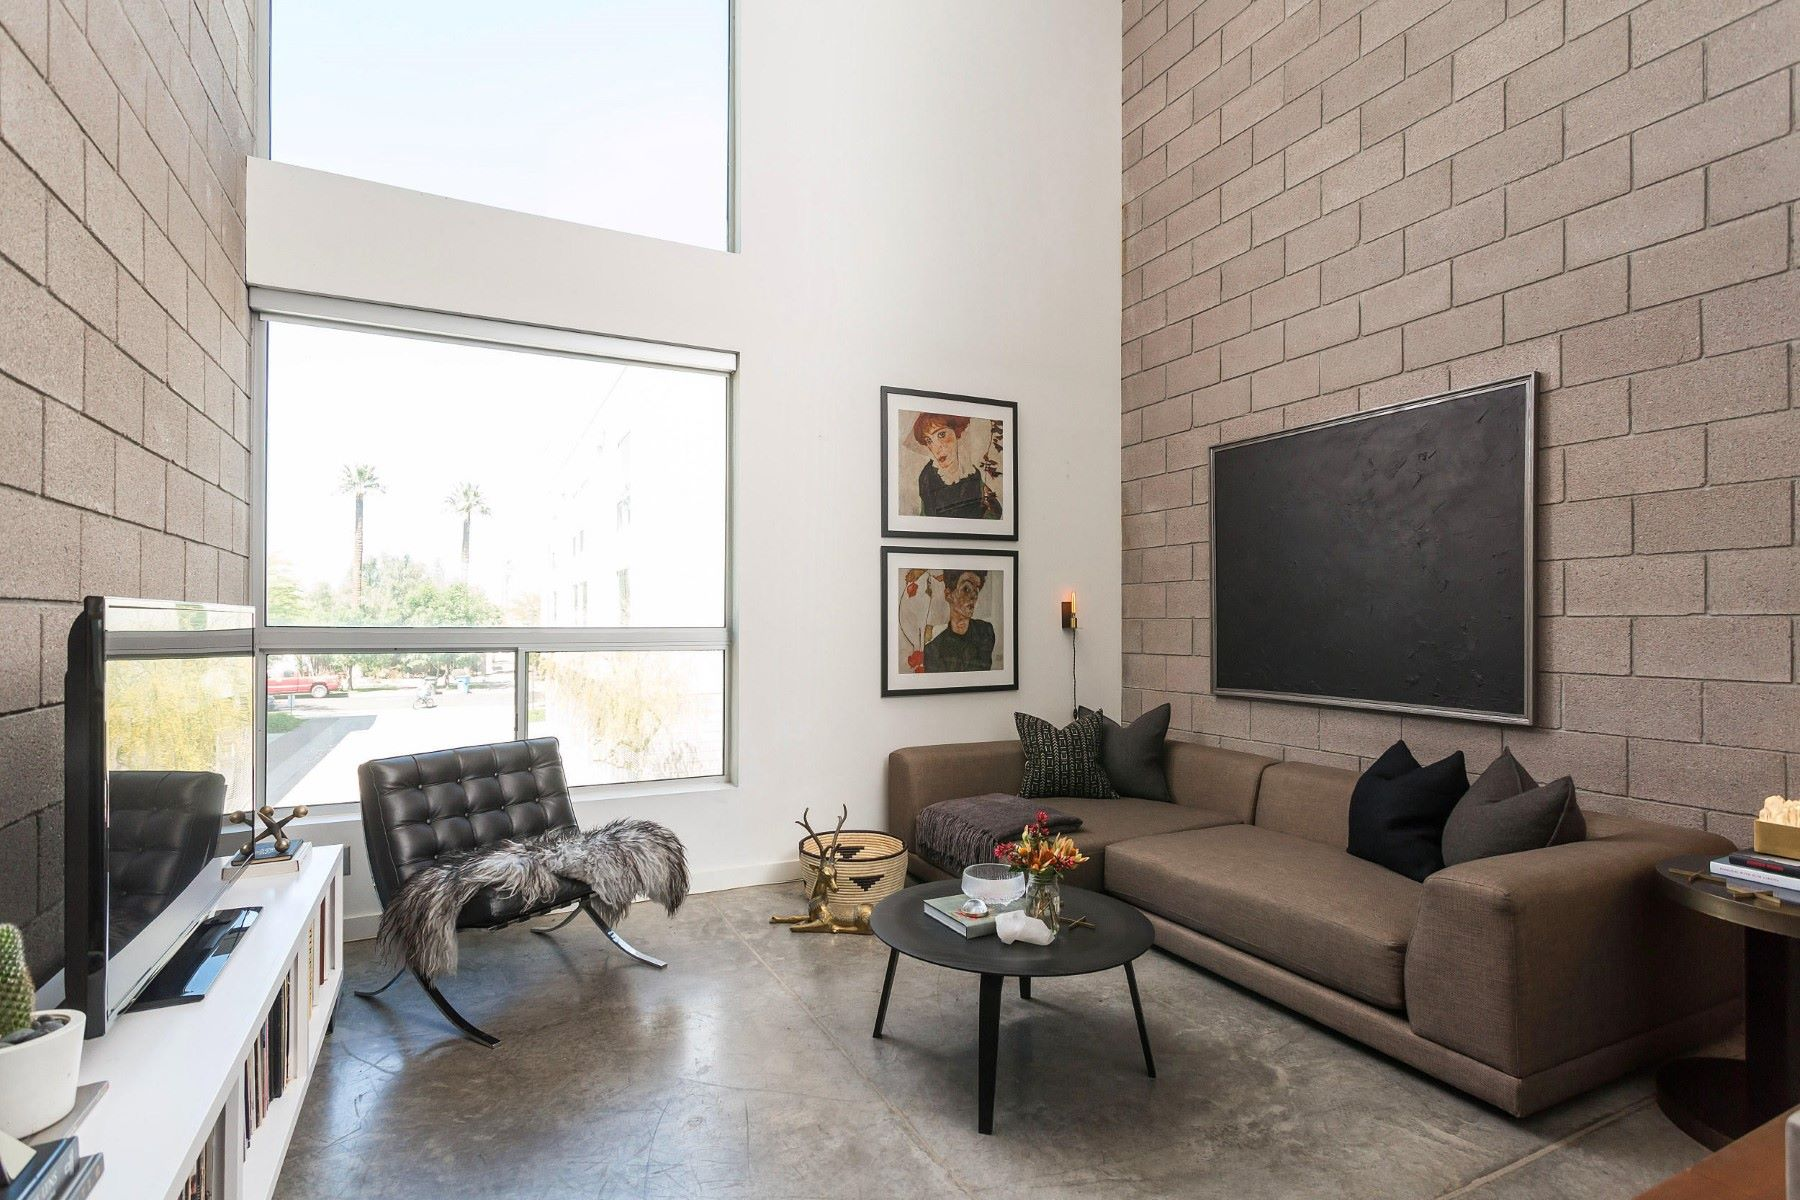 Townhouse for Sale at Live the downtown life in this upscale-industrial loft 727 E Portland St #30 Phoenix, Arizona, 85006 United States